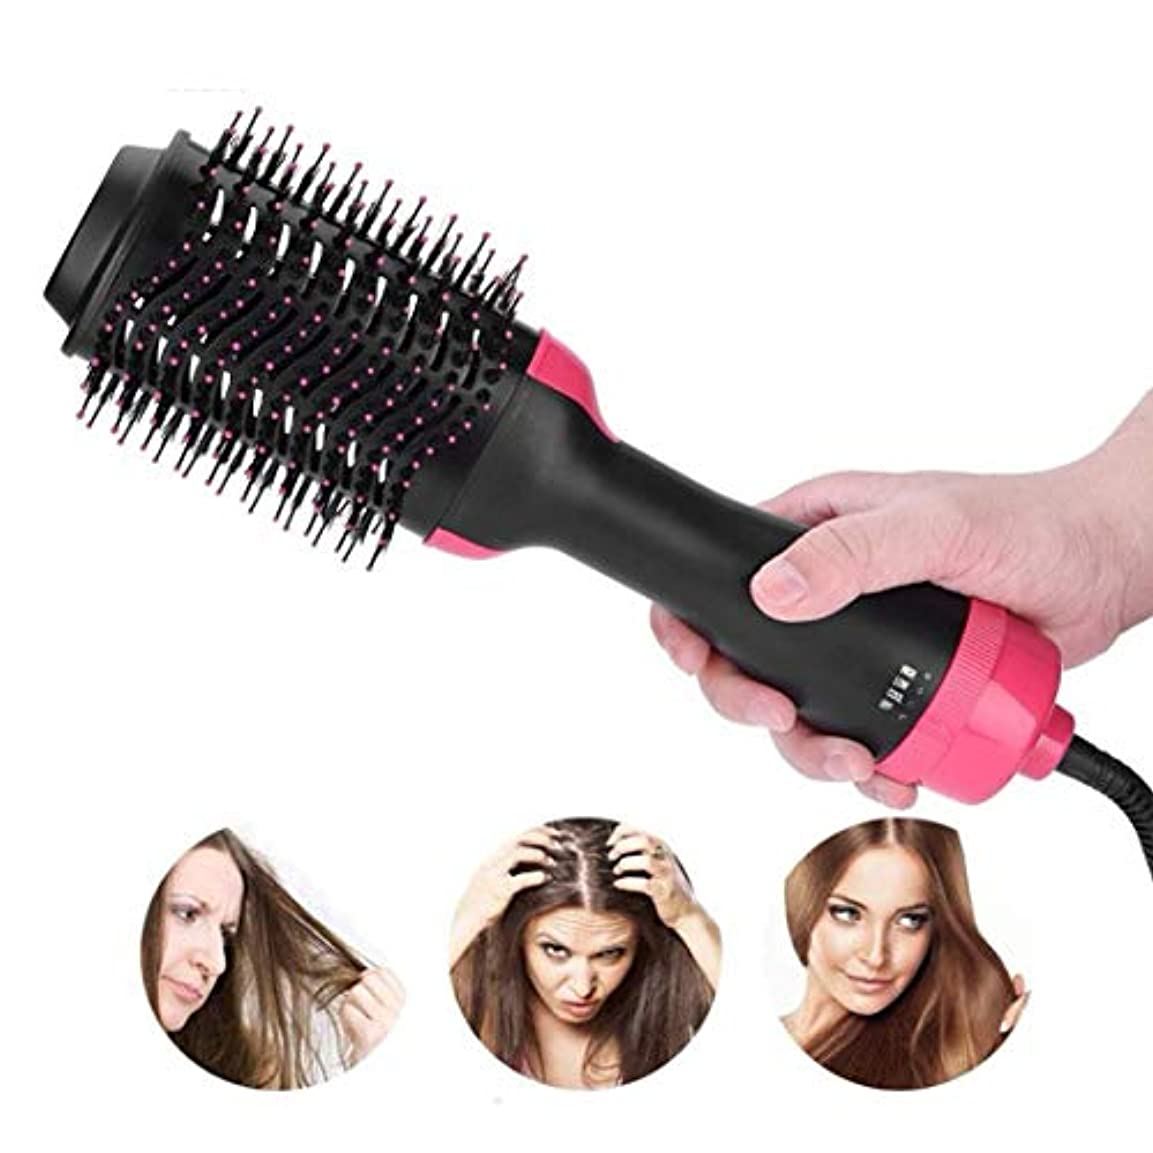 ニュージーランドペニーダウンタウンMQ Hair Blow Dryer Brush, MQ One Step Hair Dryer & Volumizer 3 in 1 Hot Air Brush Multifunctional Hair Dryer Straighten...